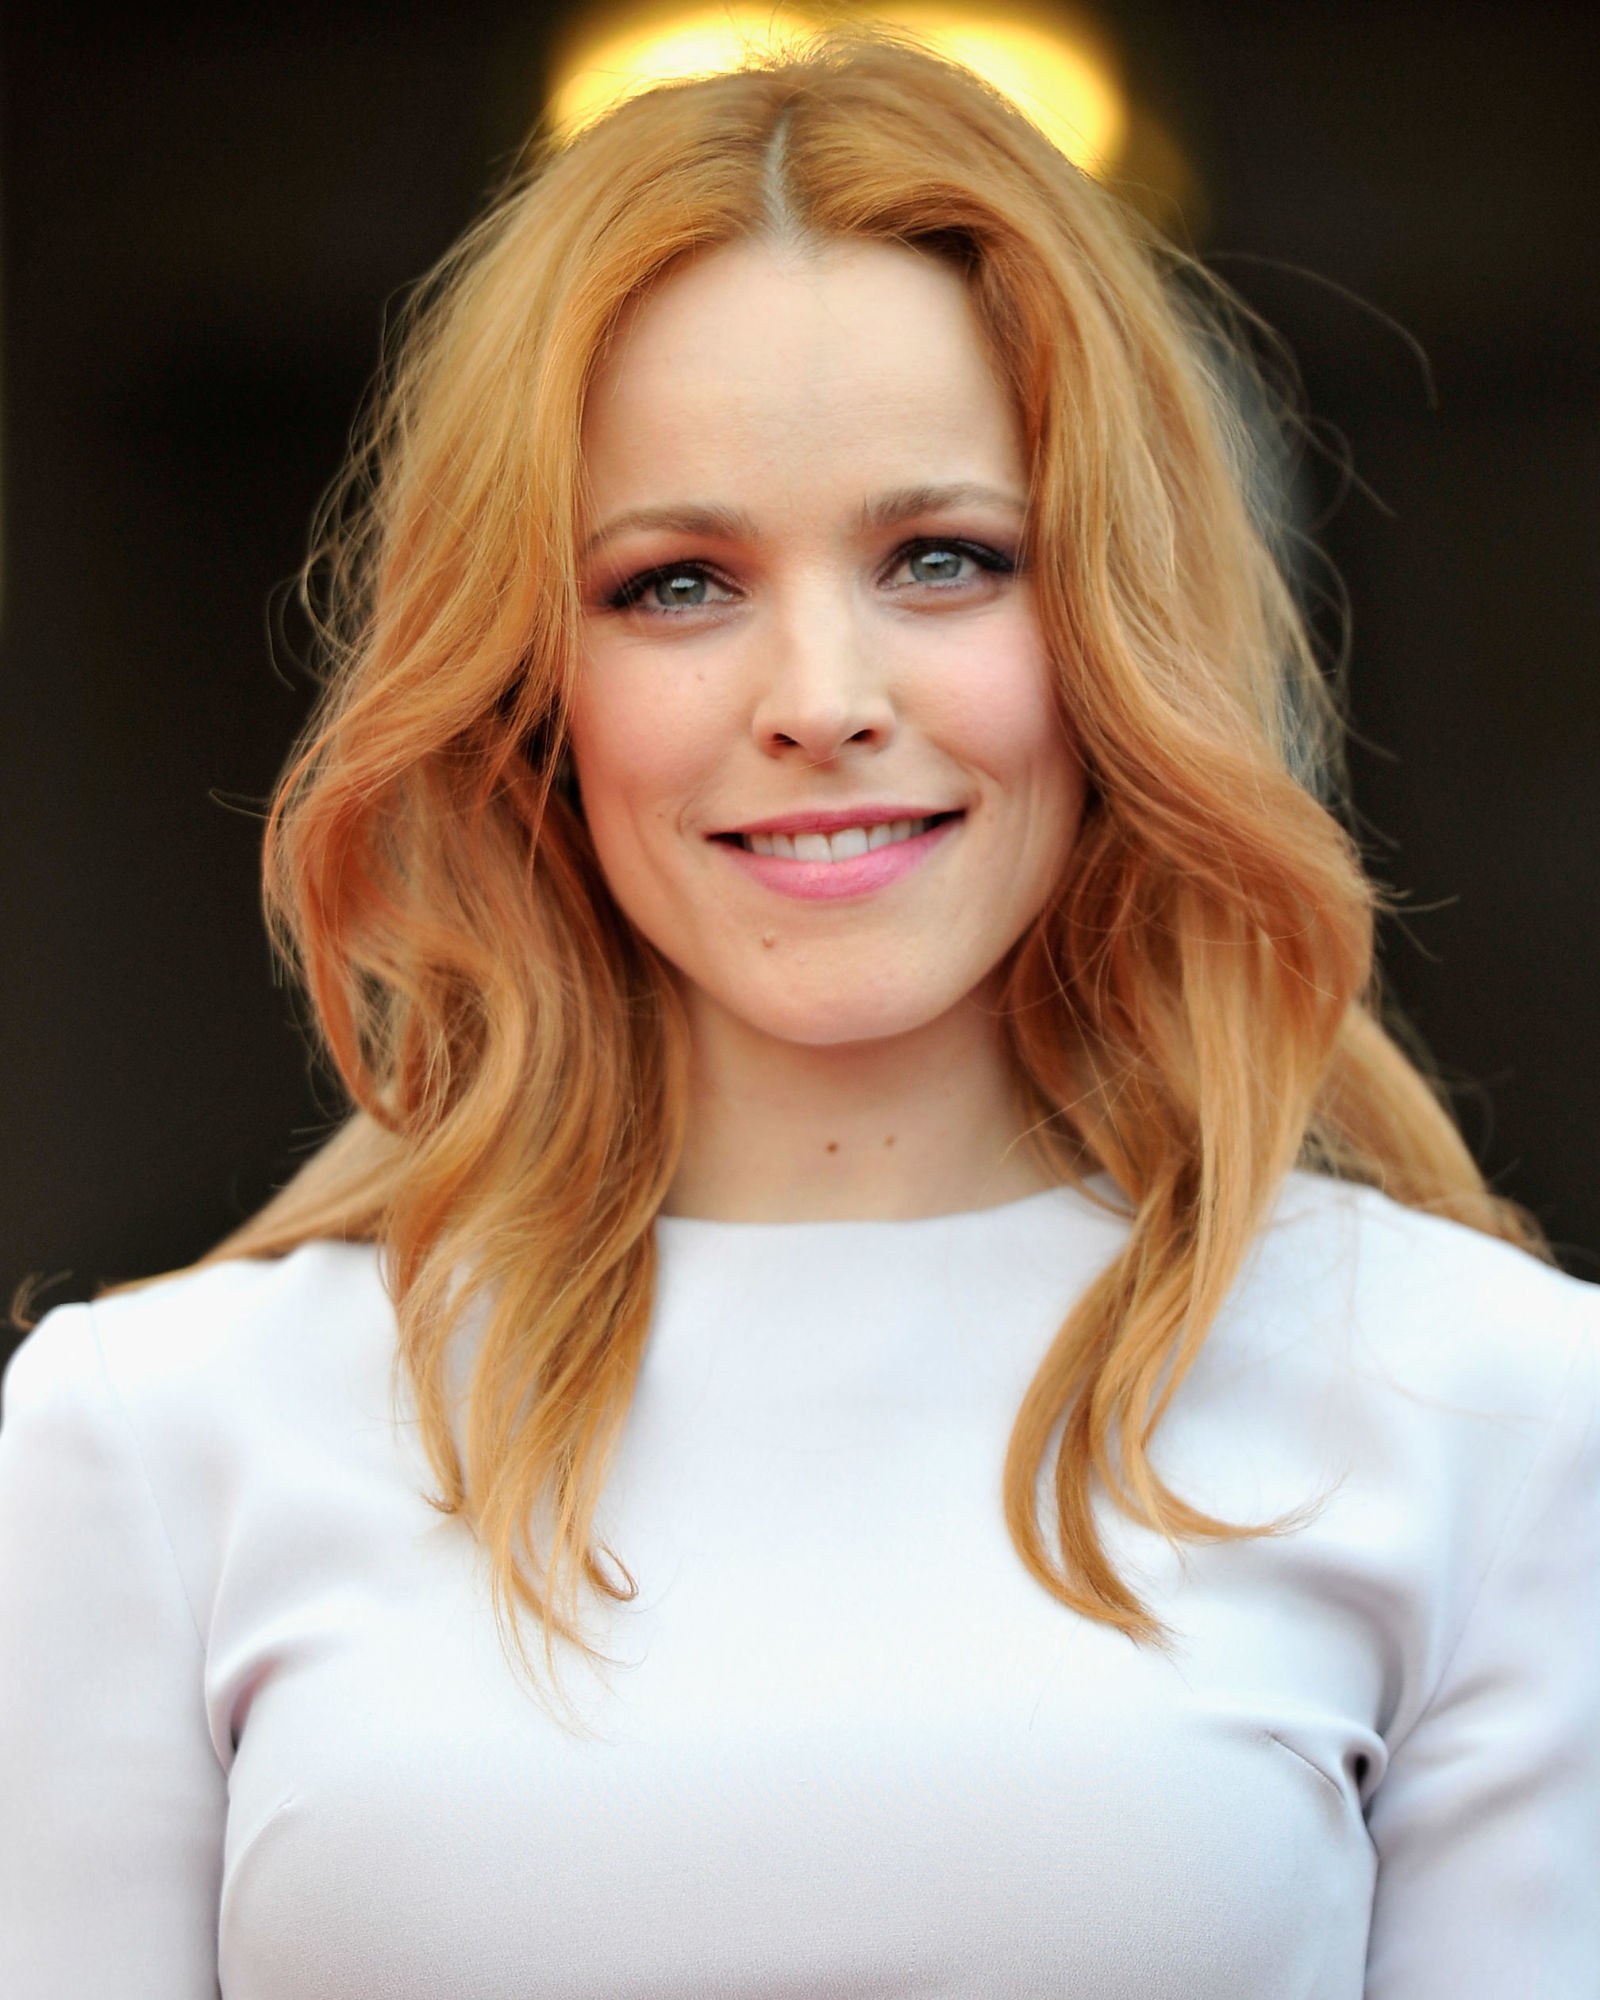 gallery-1449871169-rachel-mcadams-strawberry-blonde-hair-2